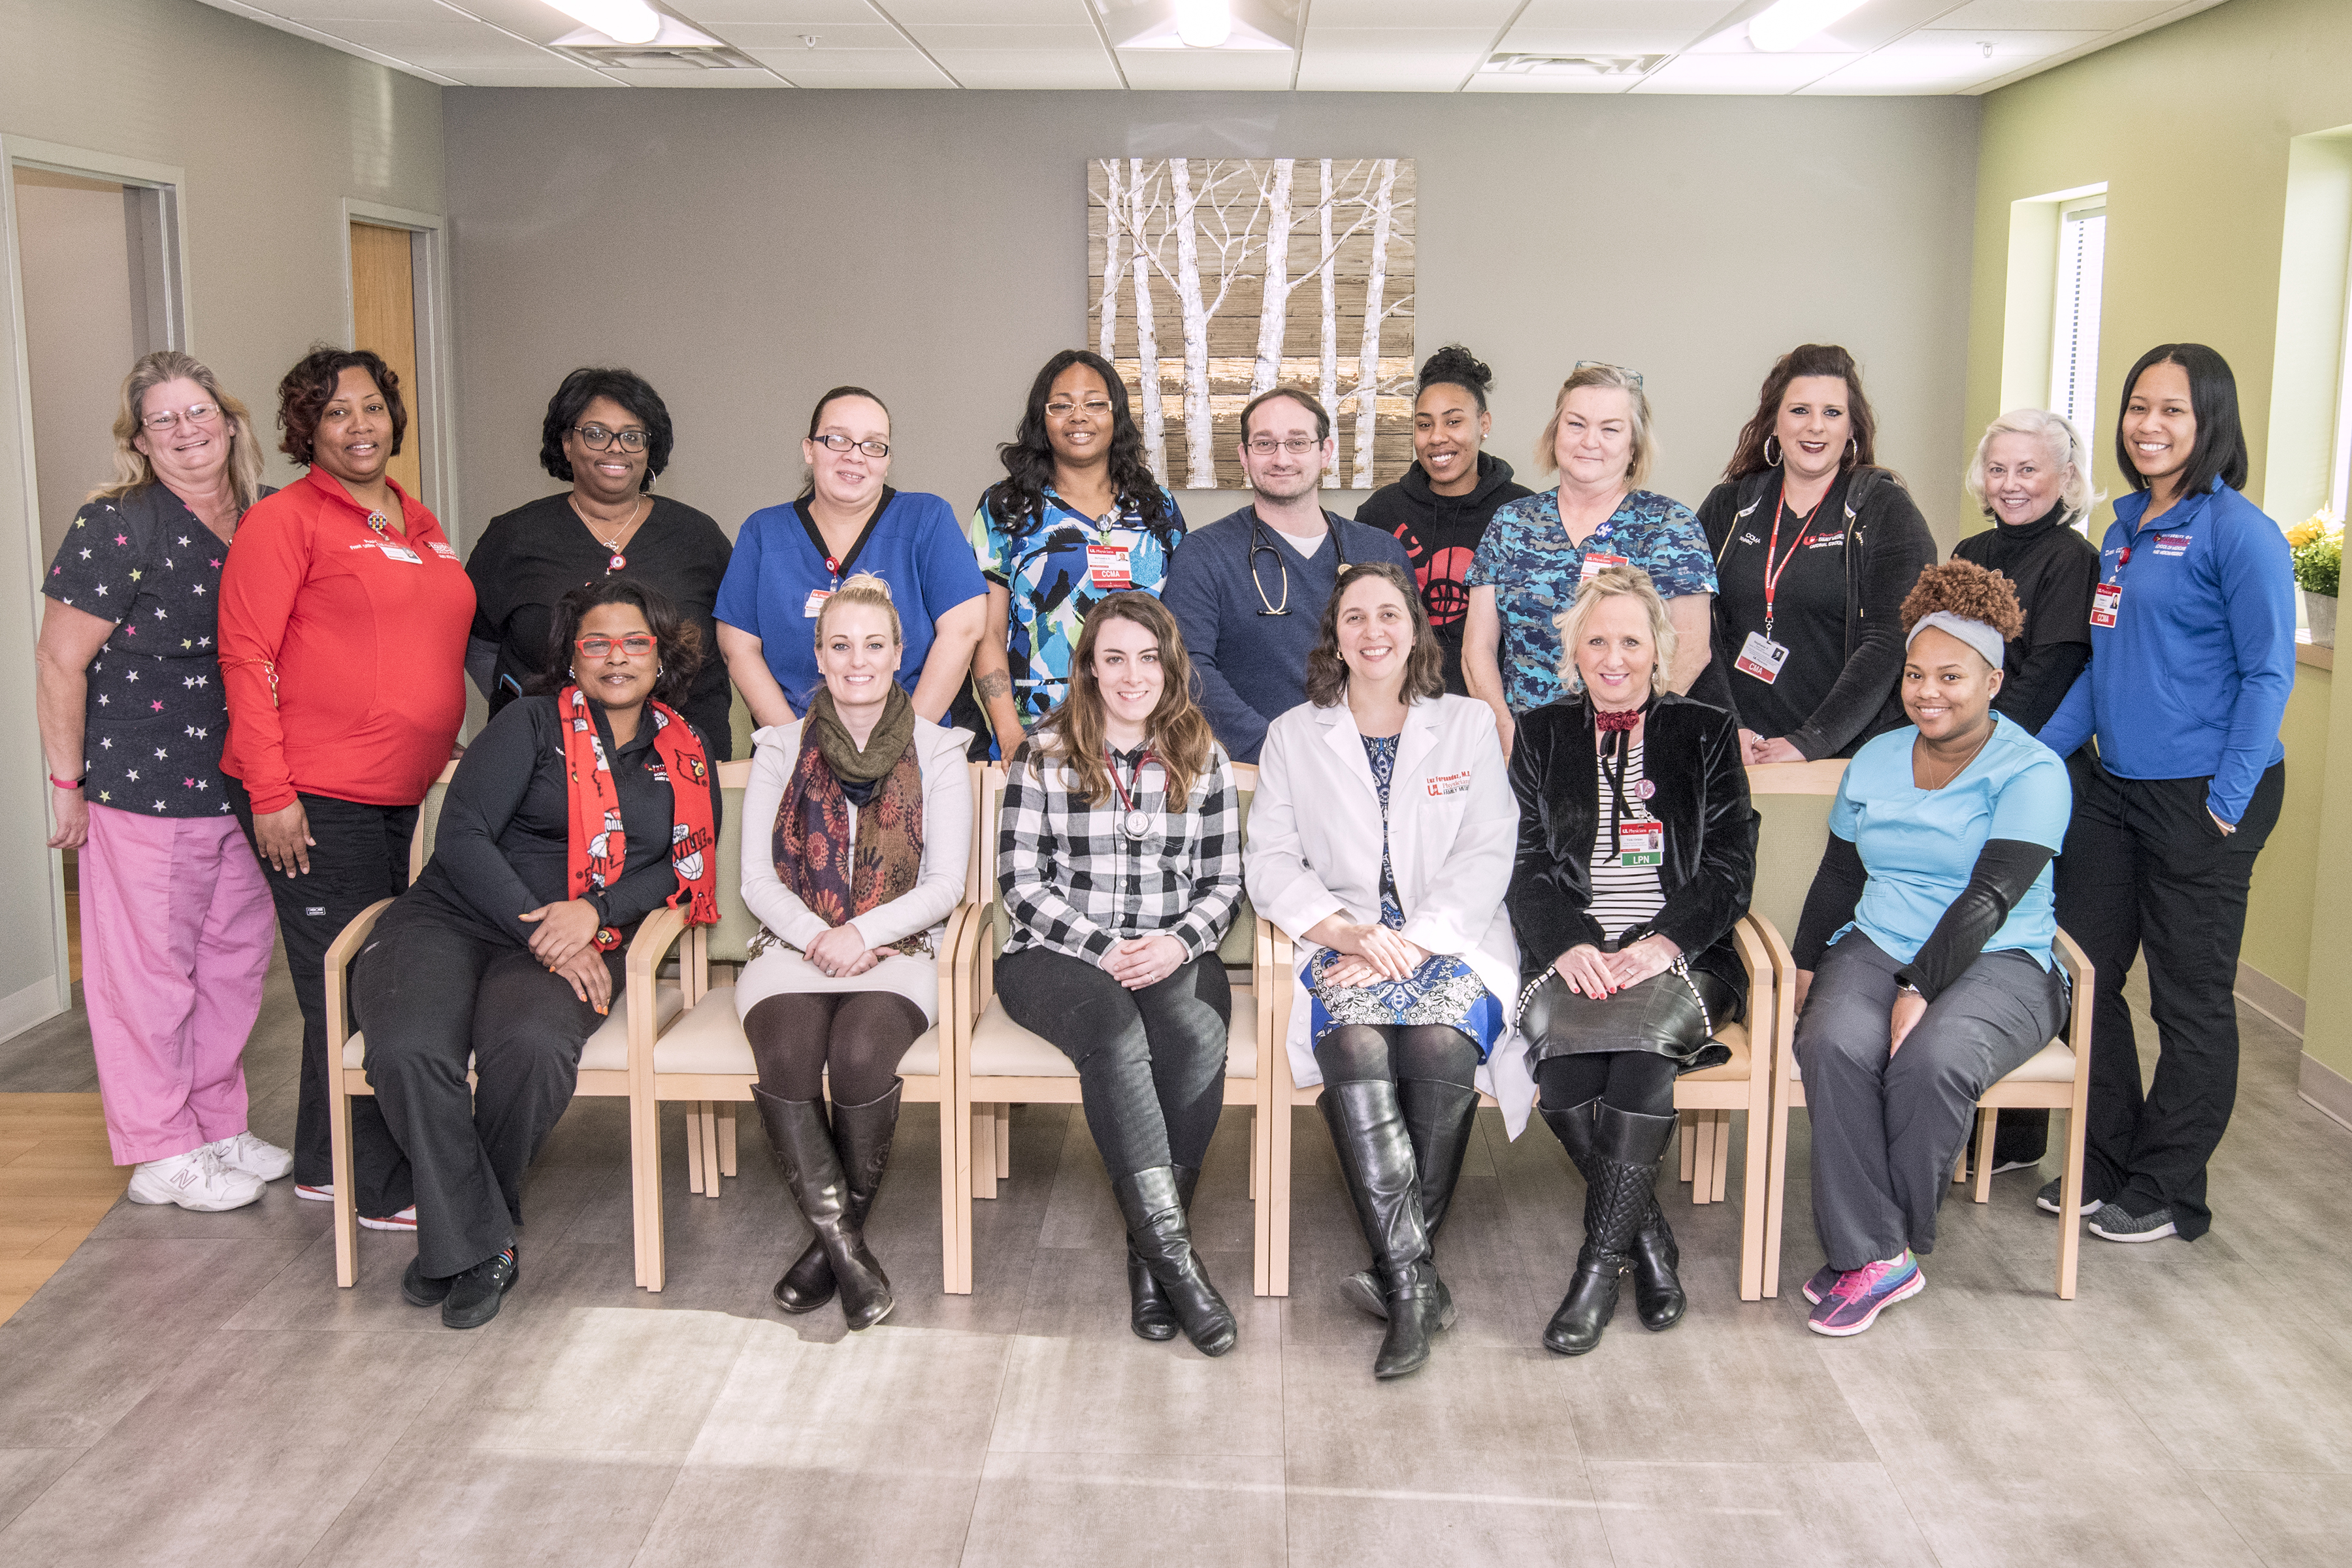 UofL Physicians – Family Medicine Cardinal Station accepting new patients at renovated facility